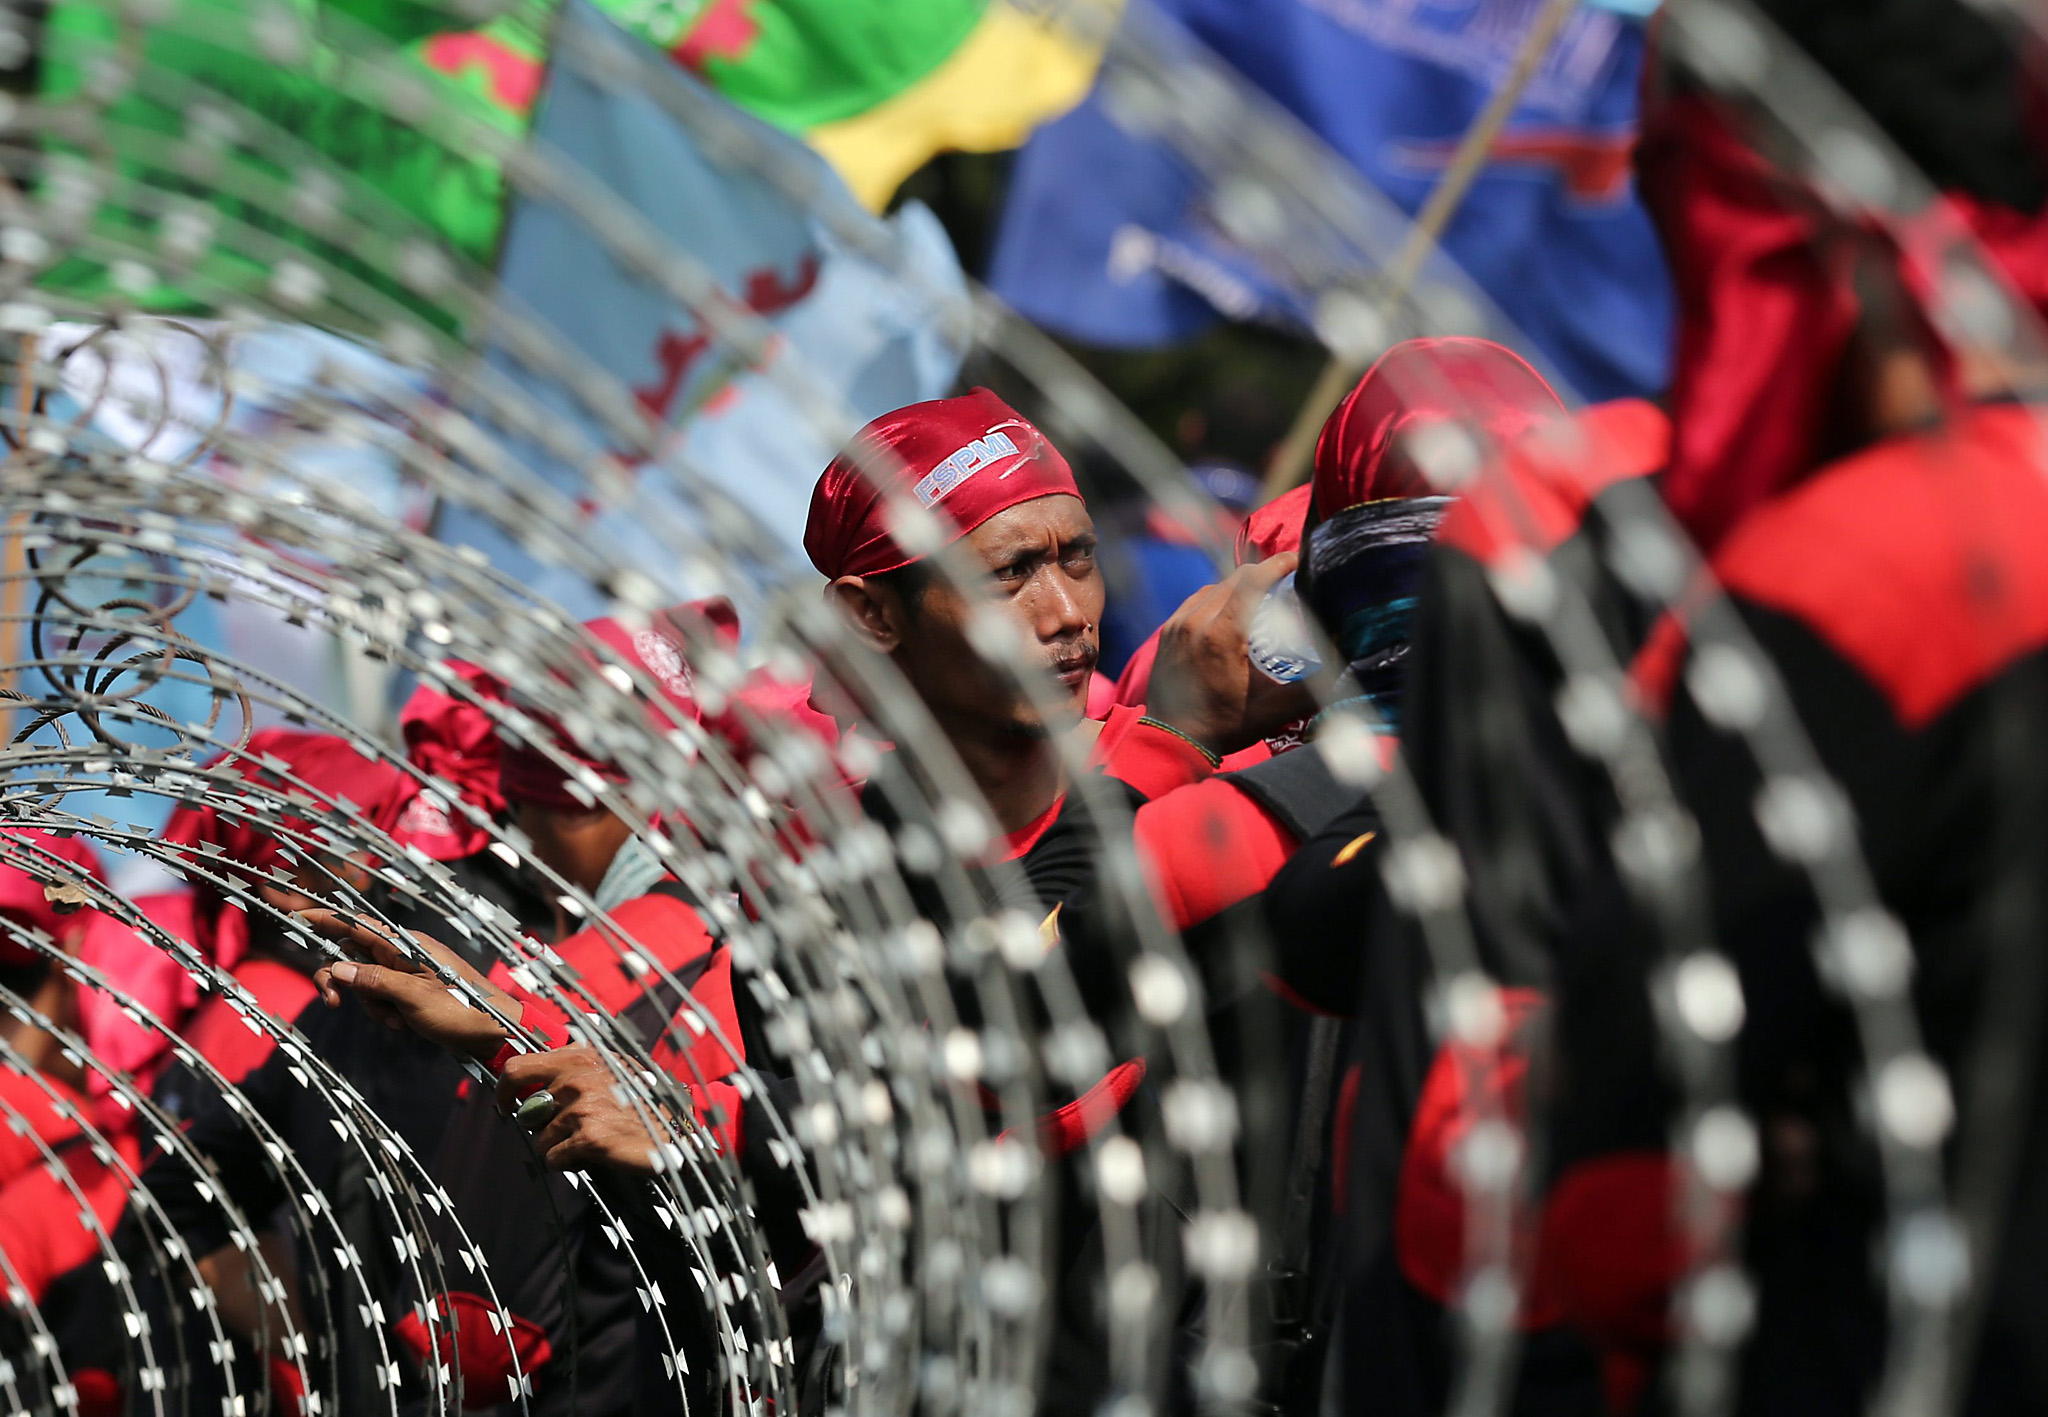 Labour Protest in Jakarta...epa05003108 Indonesian workers stands near barbed wire during a rally outside the Presidential Merdeka Palace in Jakarta, Indonesia, 30 October 2015. Thousands of workers staged a rally urging the government to improve working conditions and protest against job cuts.